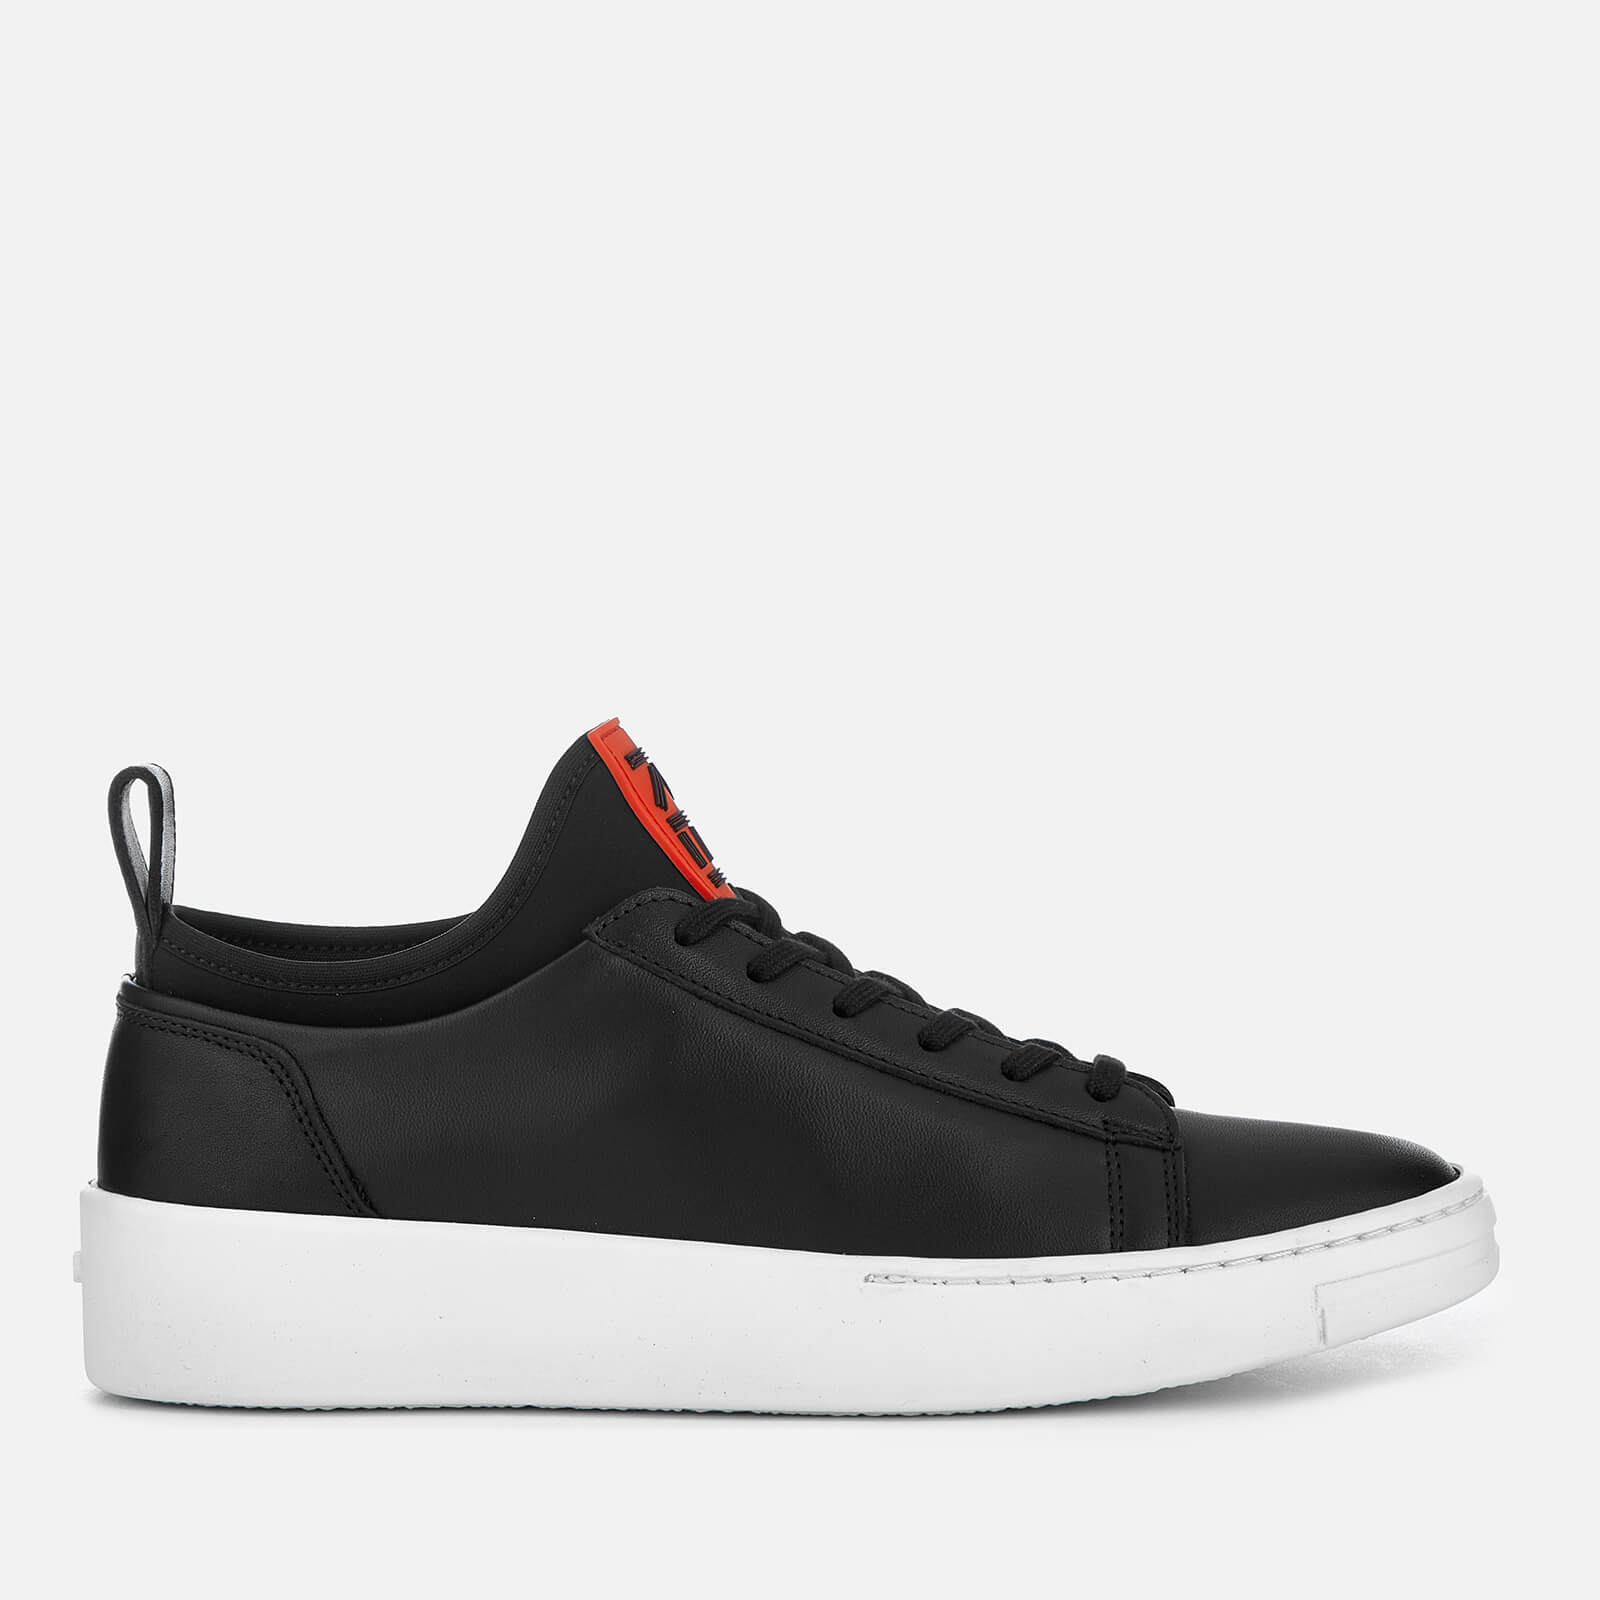 d2e12faa KENZO Women's K-city Low Top Logo Trainers - Black - Free UK Delivery over  £50